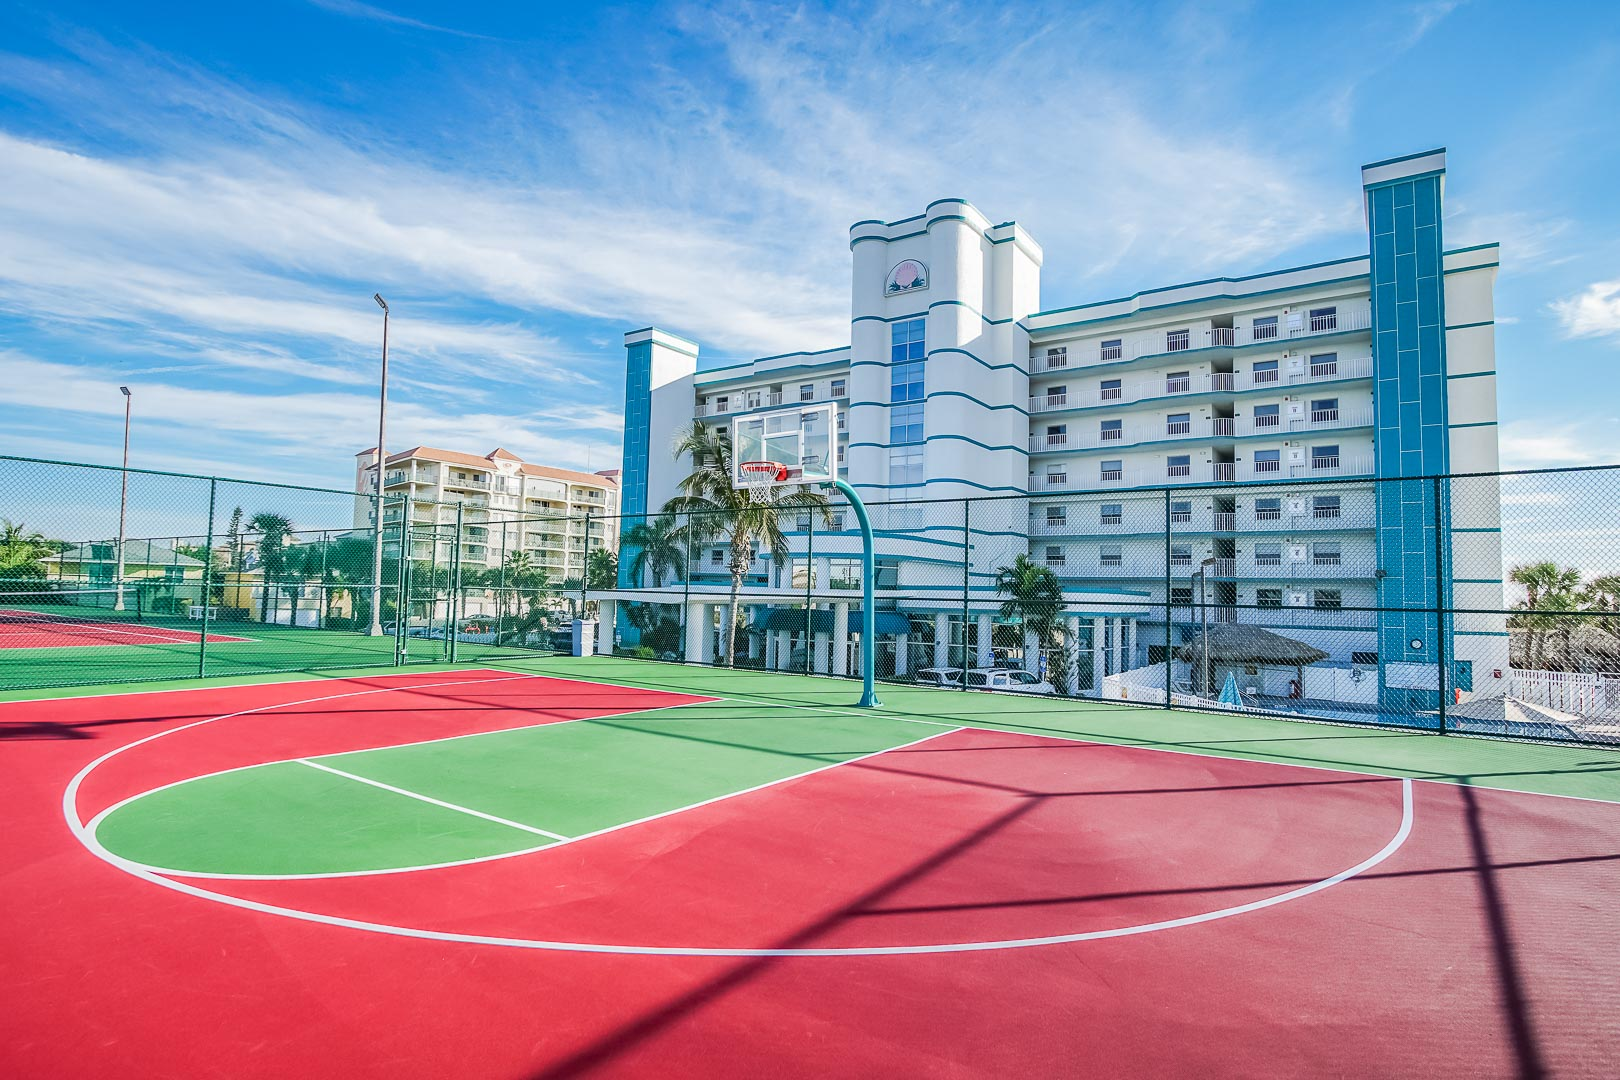 A full size outdoor basket ball court at VRI's Discovery Beach Resort in Cocoa Beach, Florida.